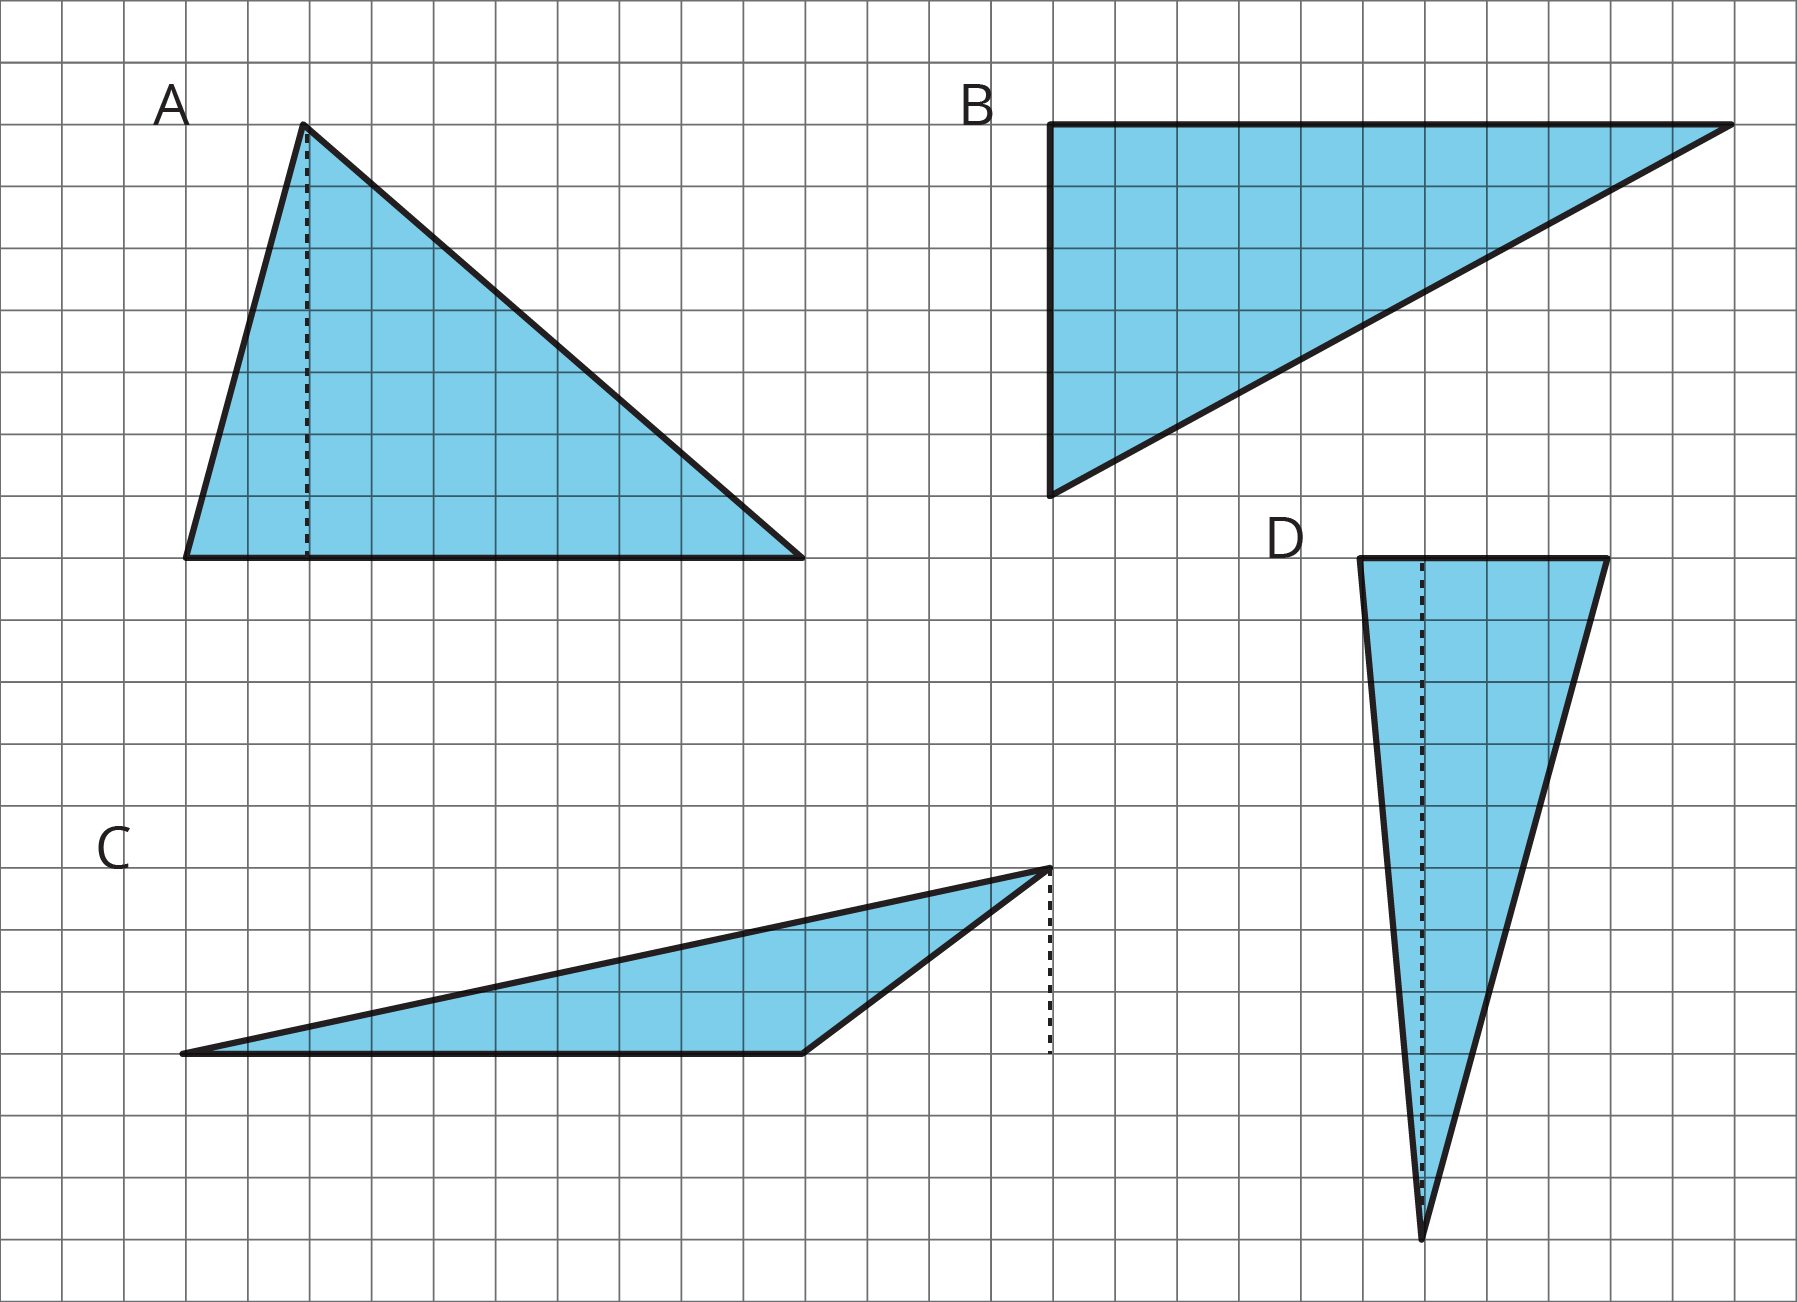 Four triangles labeled A--D on a grid.